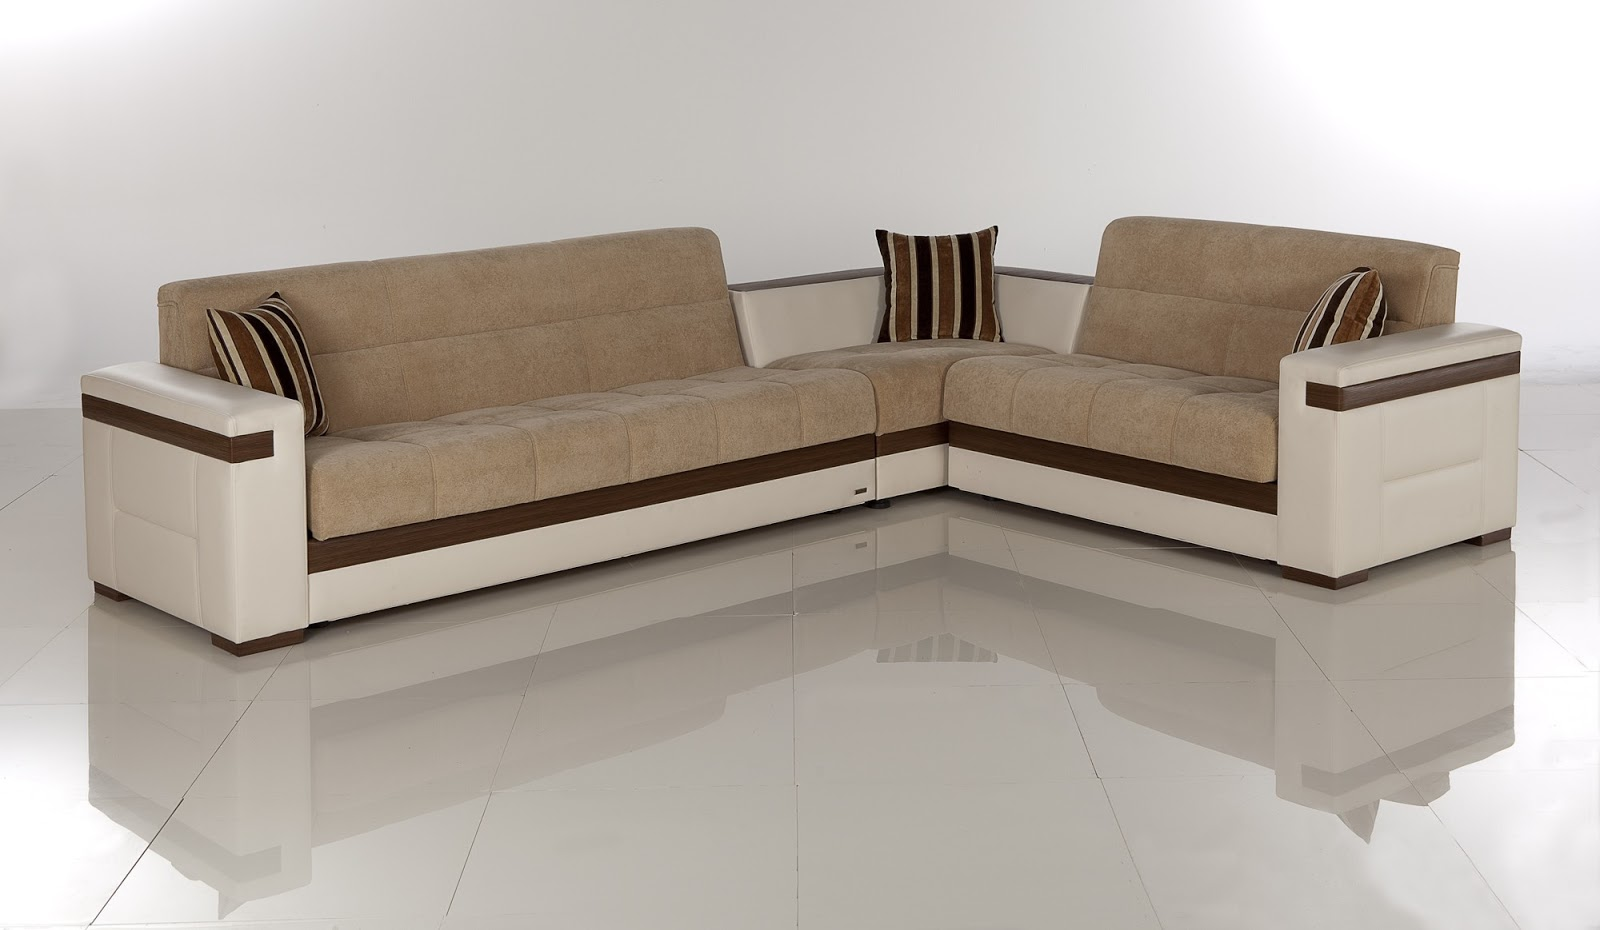 Sofa Designs Ideas Home And Design: sofa set designs for home